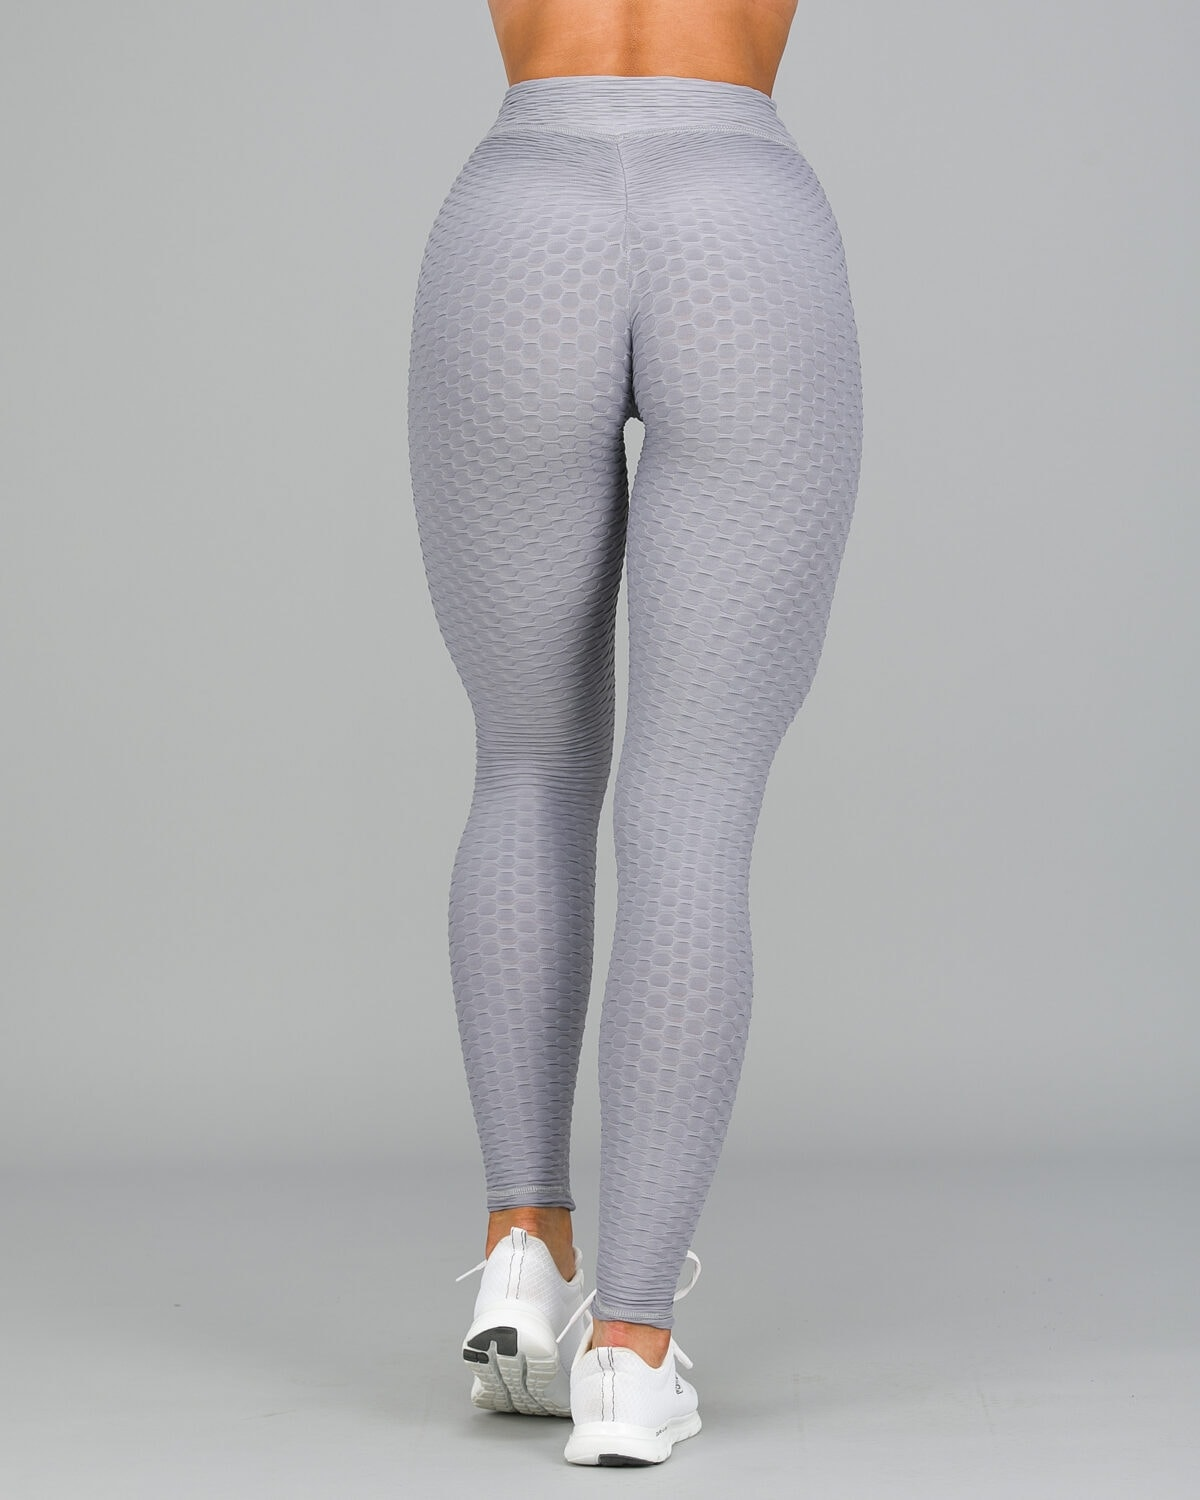 ABS2B-Fitness-Zero-Flaw-High-Rise-Leggings-Silver24-1200×1500